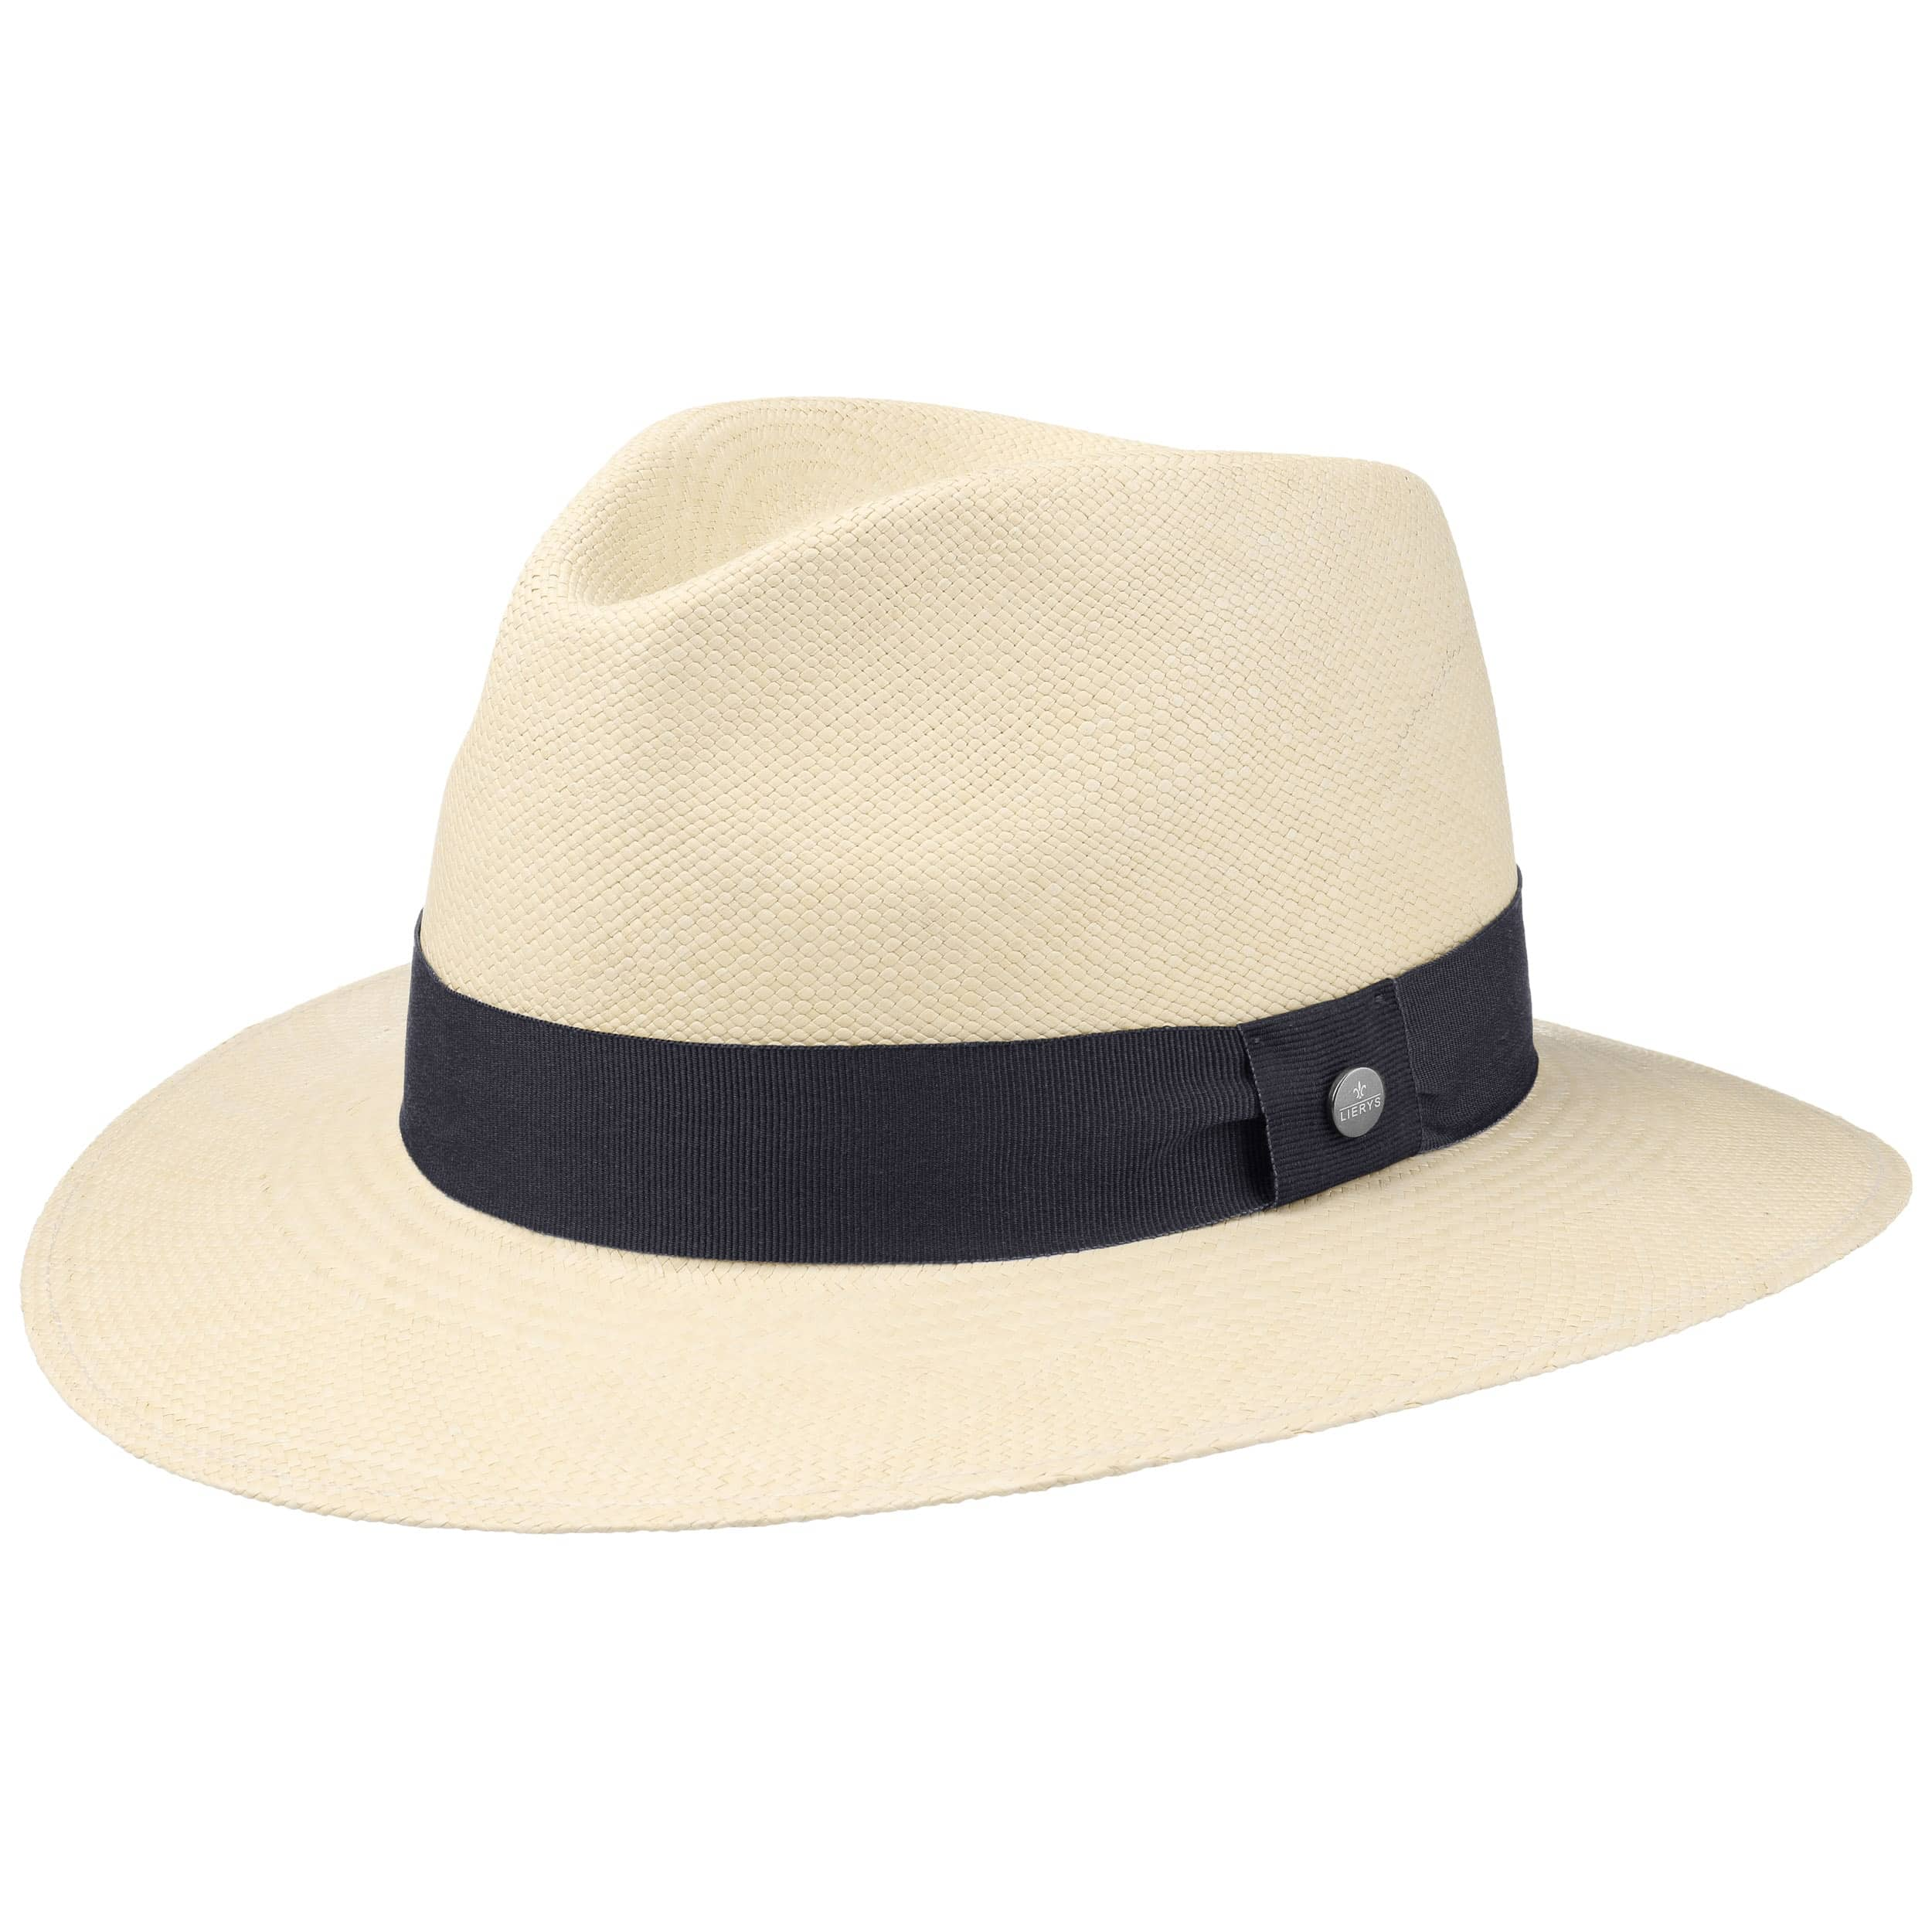 3eec2b5337 ... Cappello Panama Sophisticated by Lierys - natura-blu scuro 4 ...